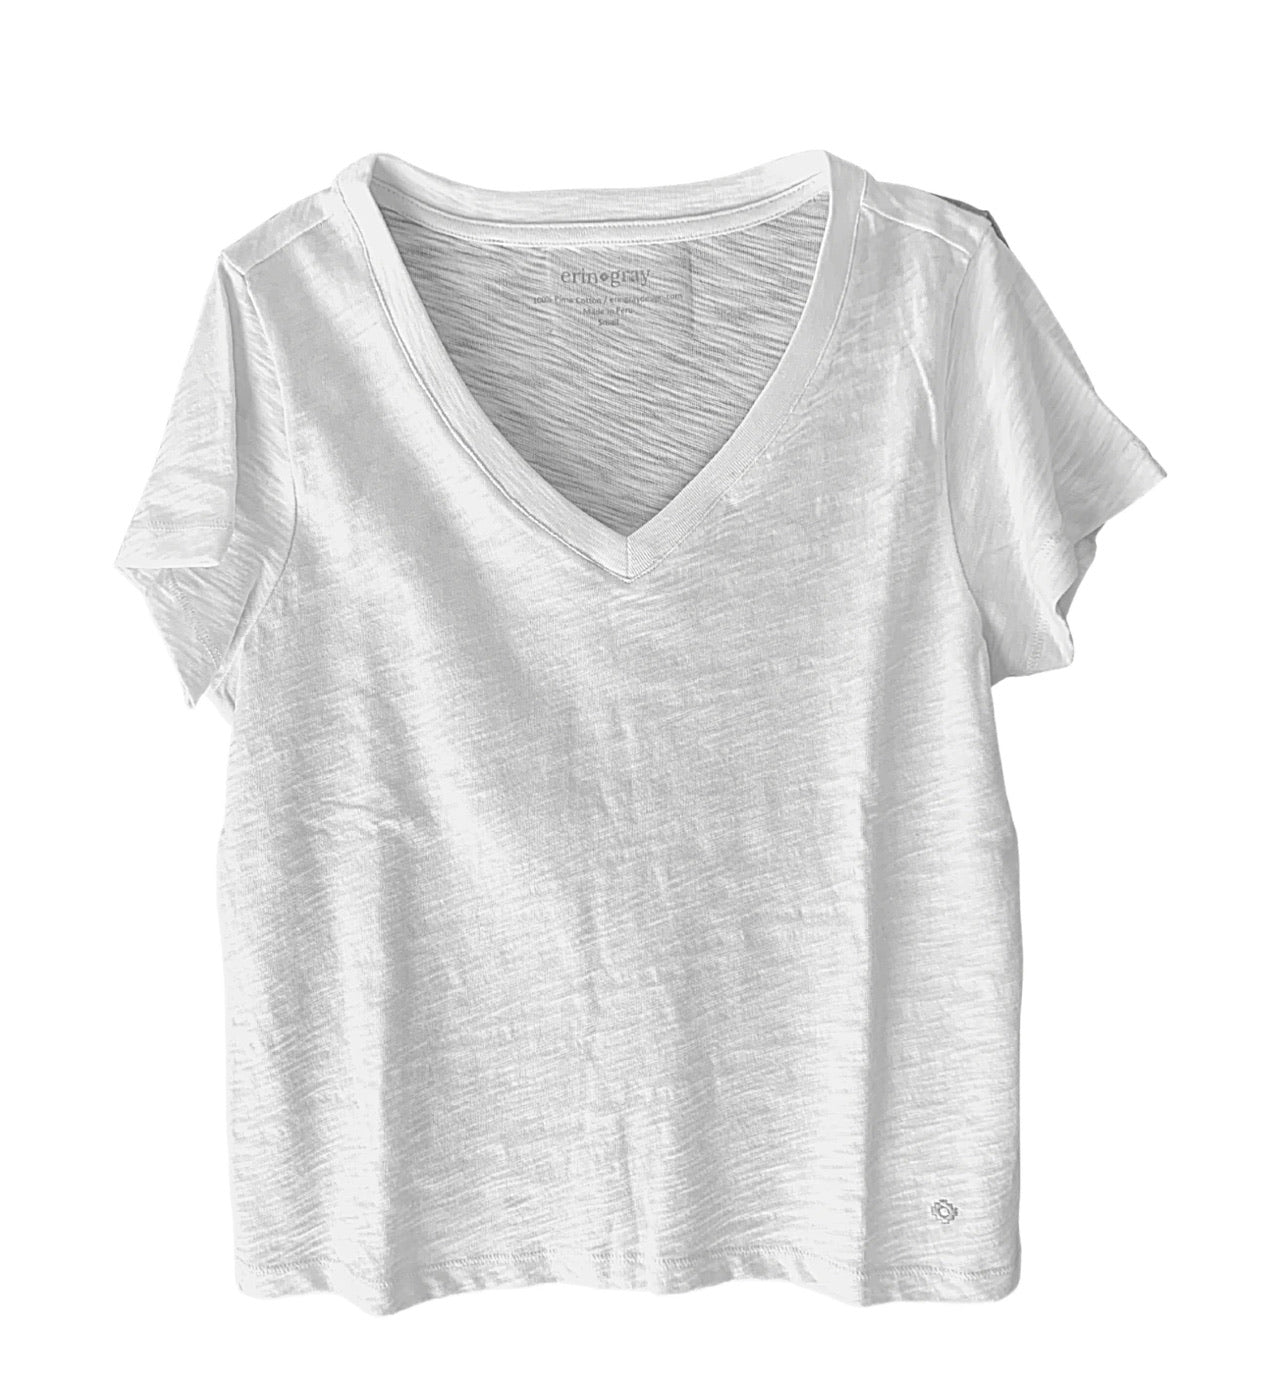 V-Neck Women's Tee by Erin Gray